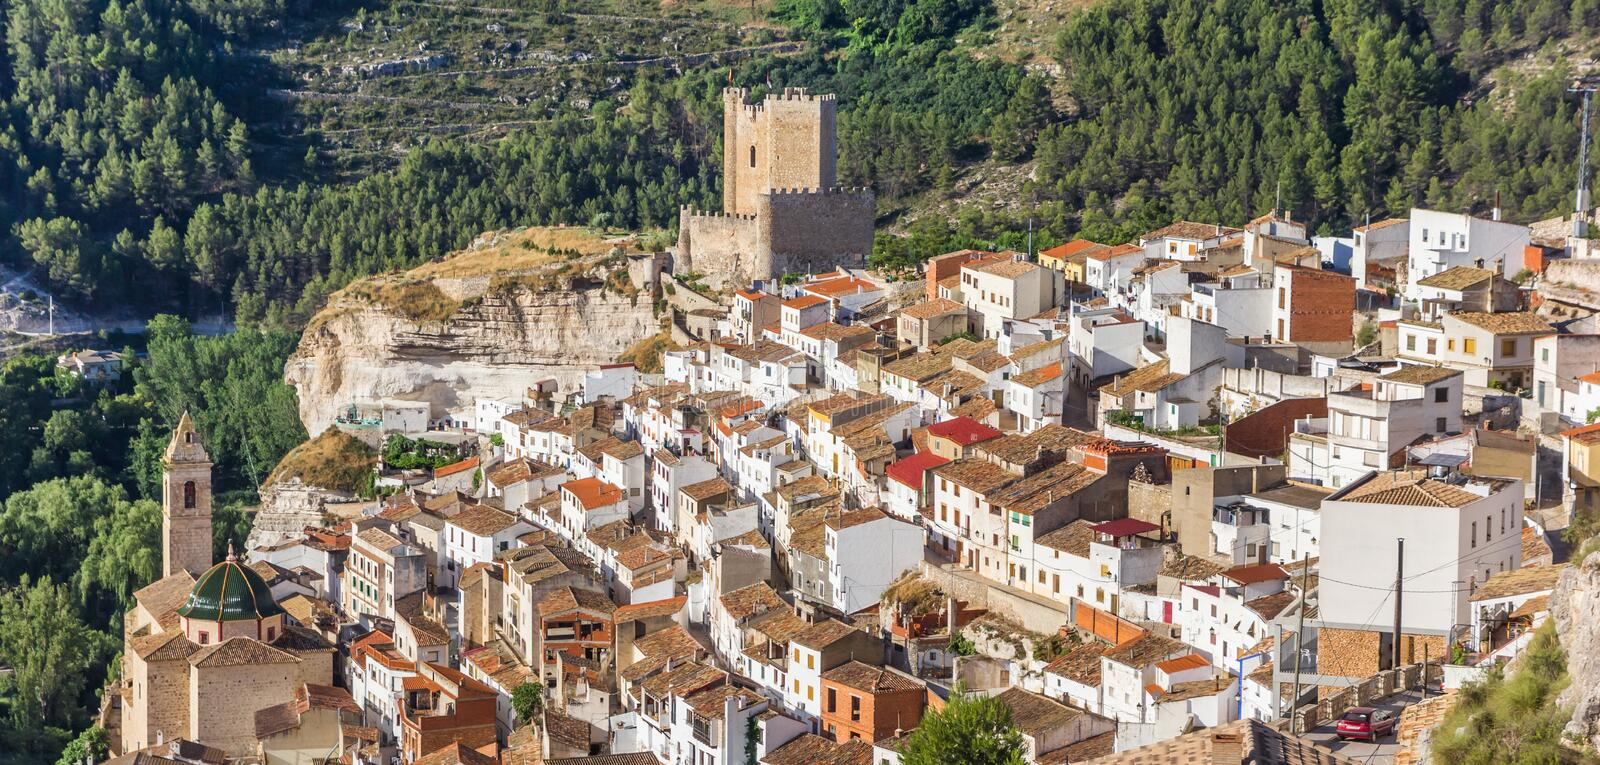 Panorama of mountain village Alcala del Jucar. Spain royalty free stock images